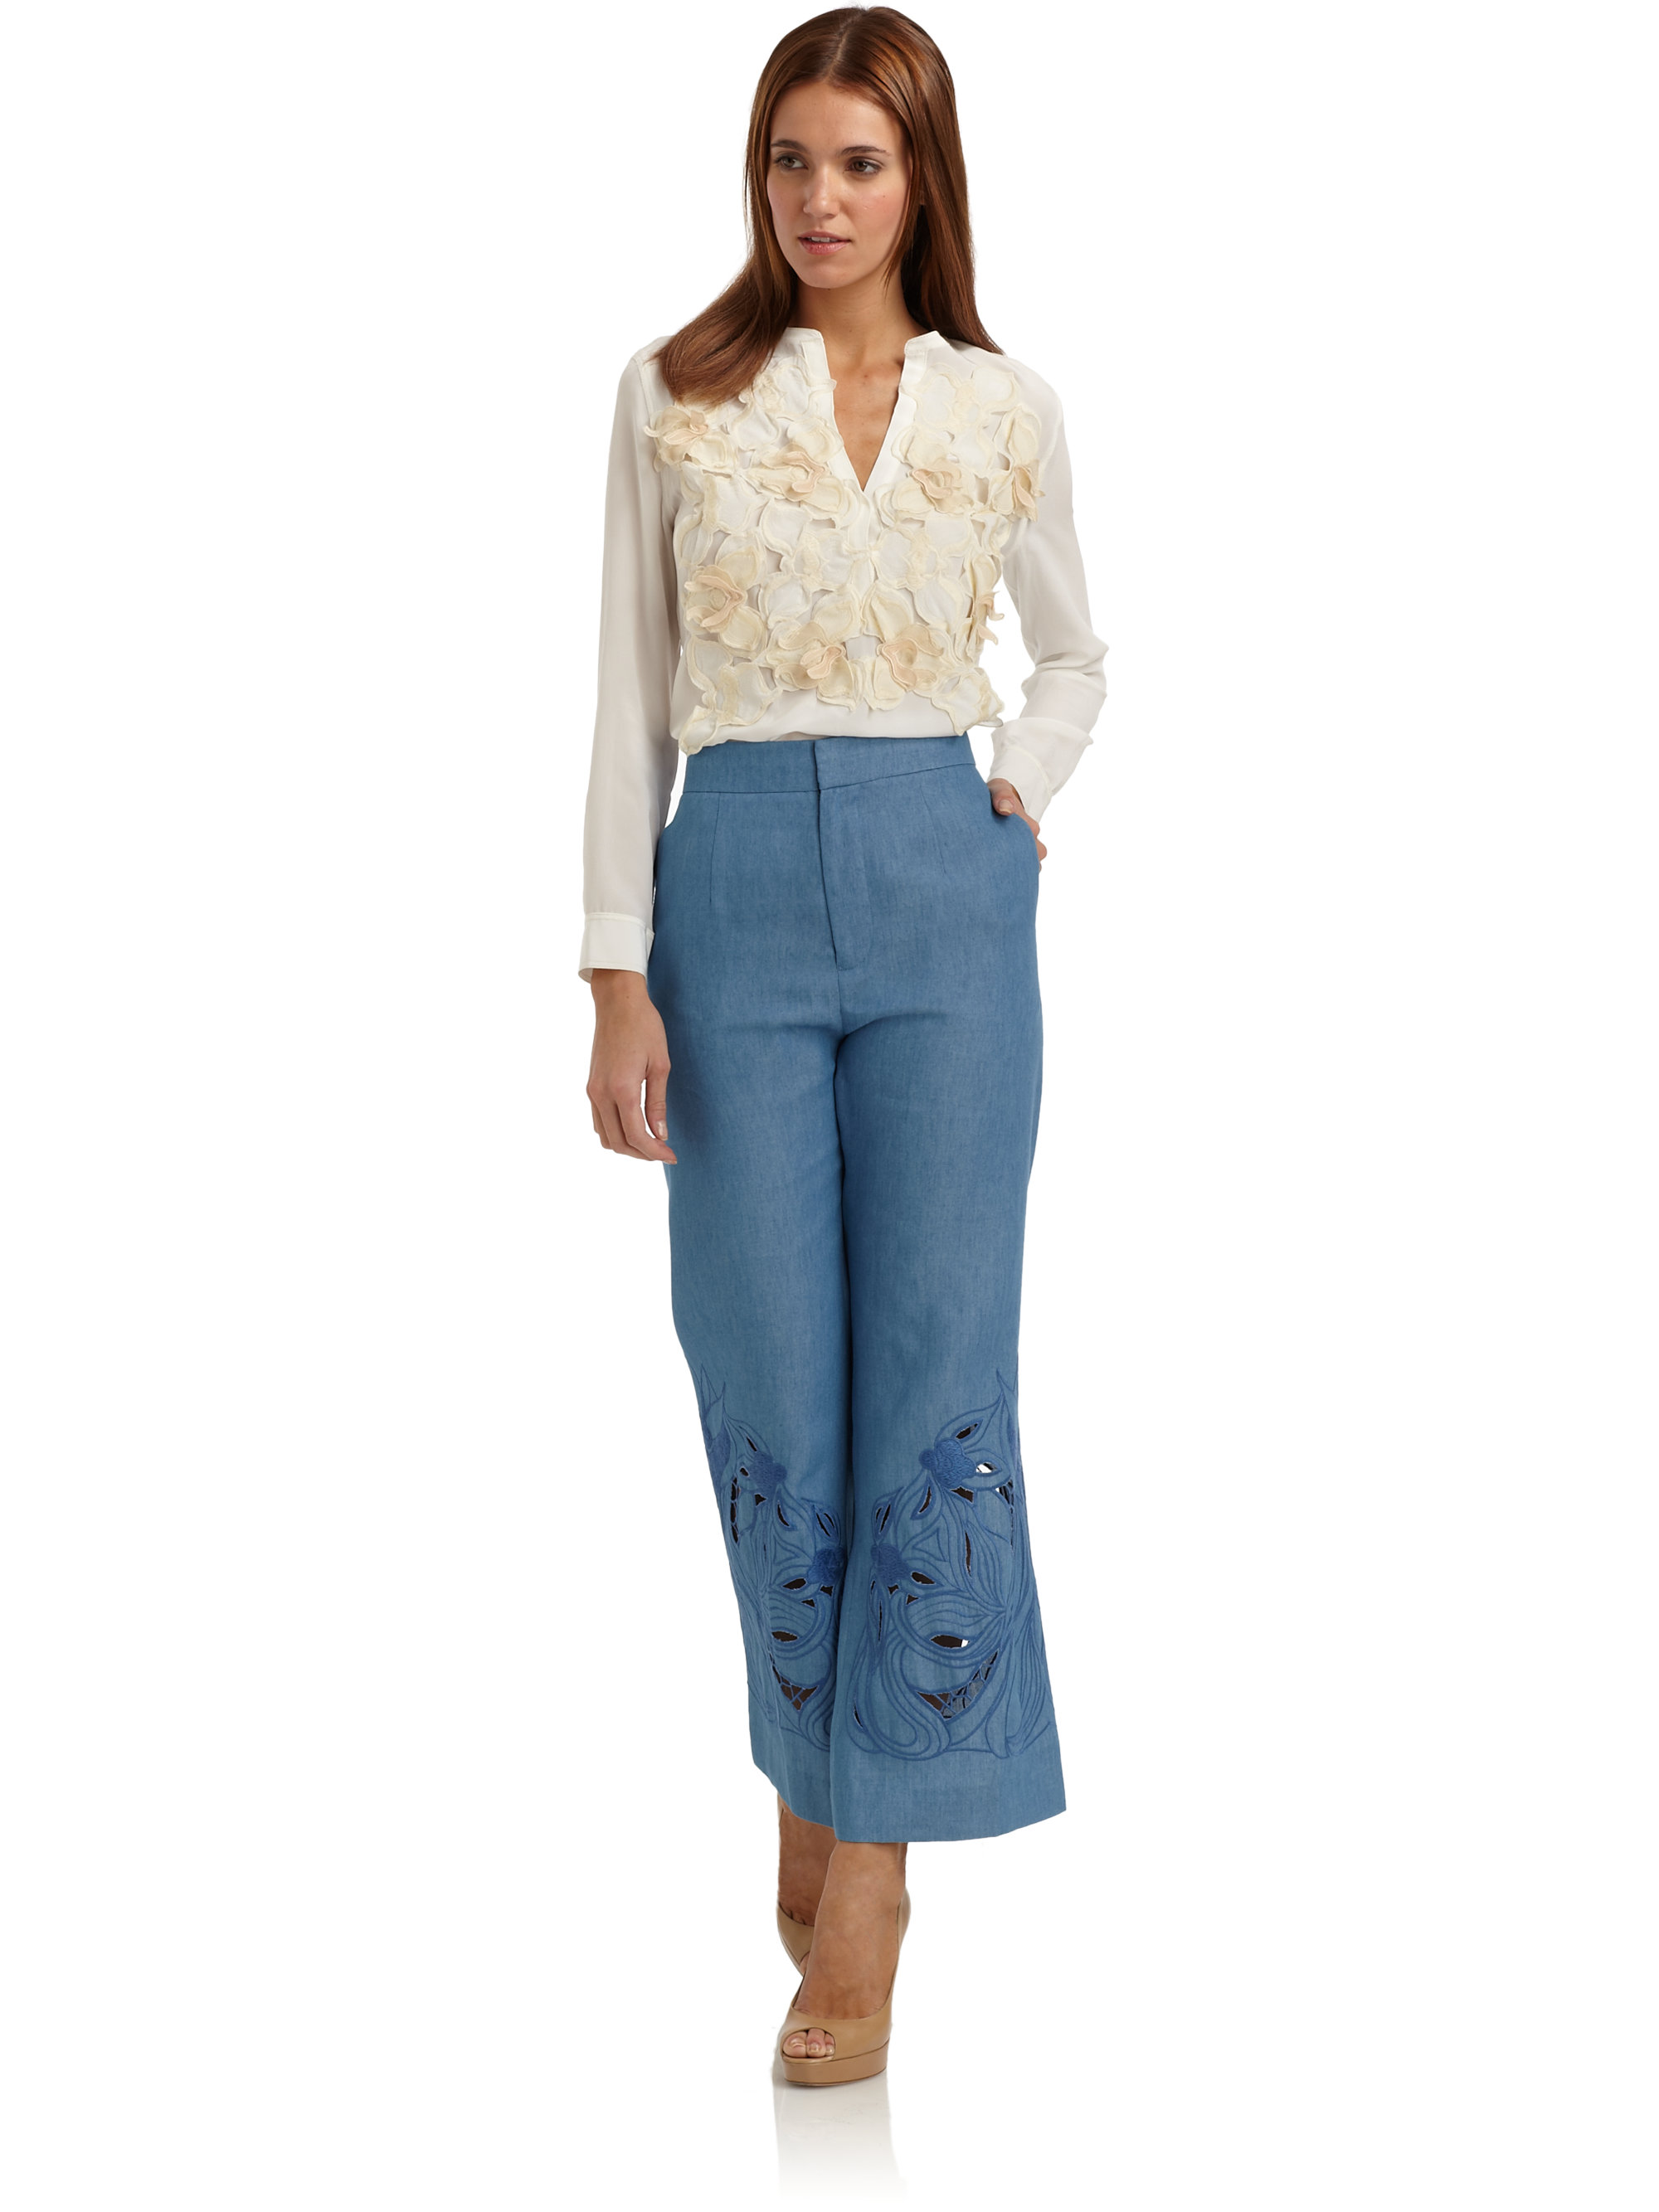 7b153ae20c167c Lyst - Vivienne Tam Silk Chiffon Floral Embroidered Blouse in White